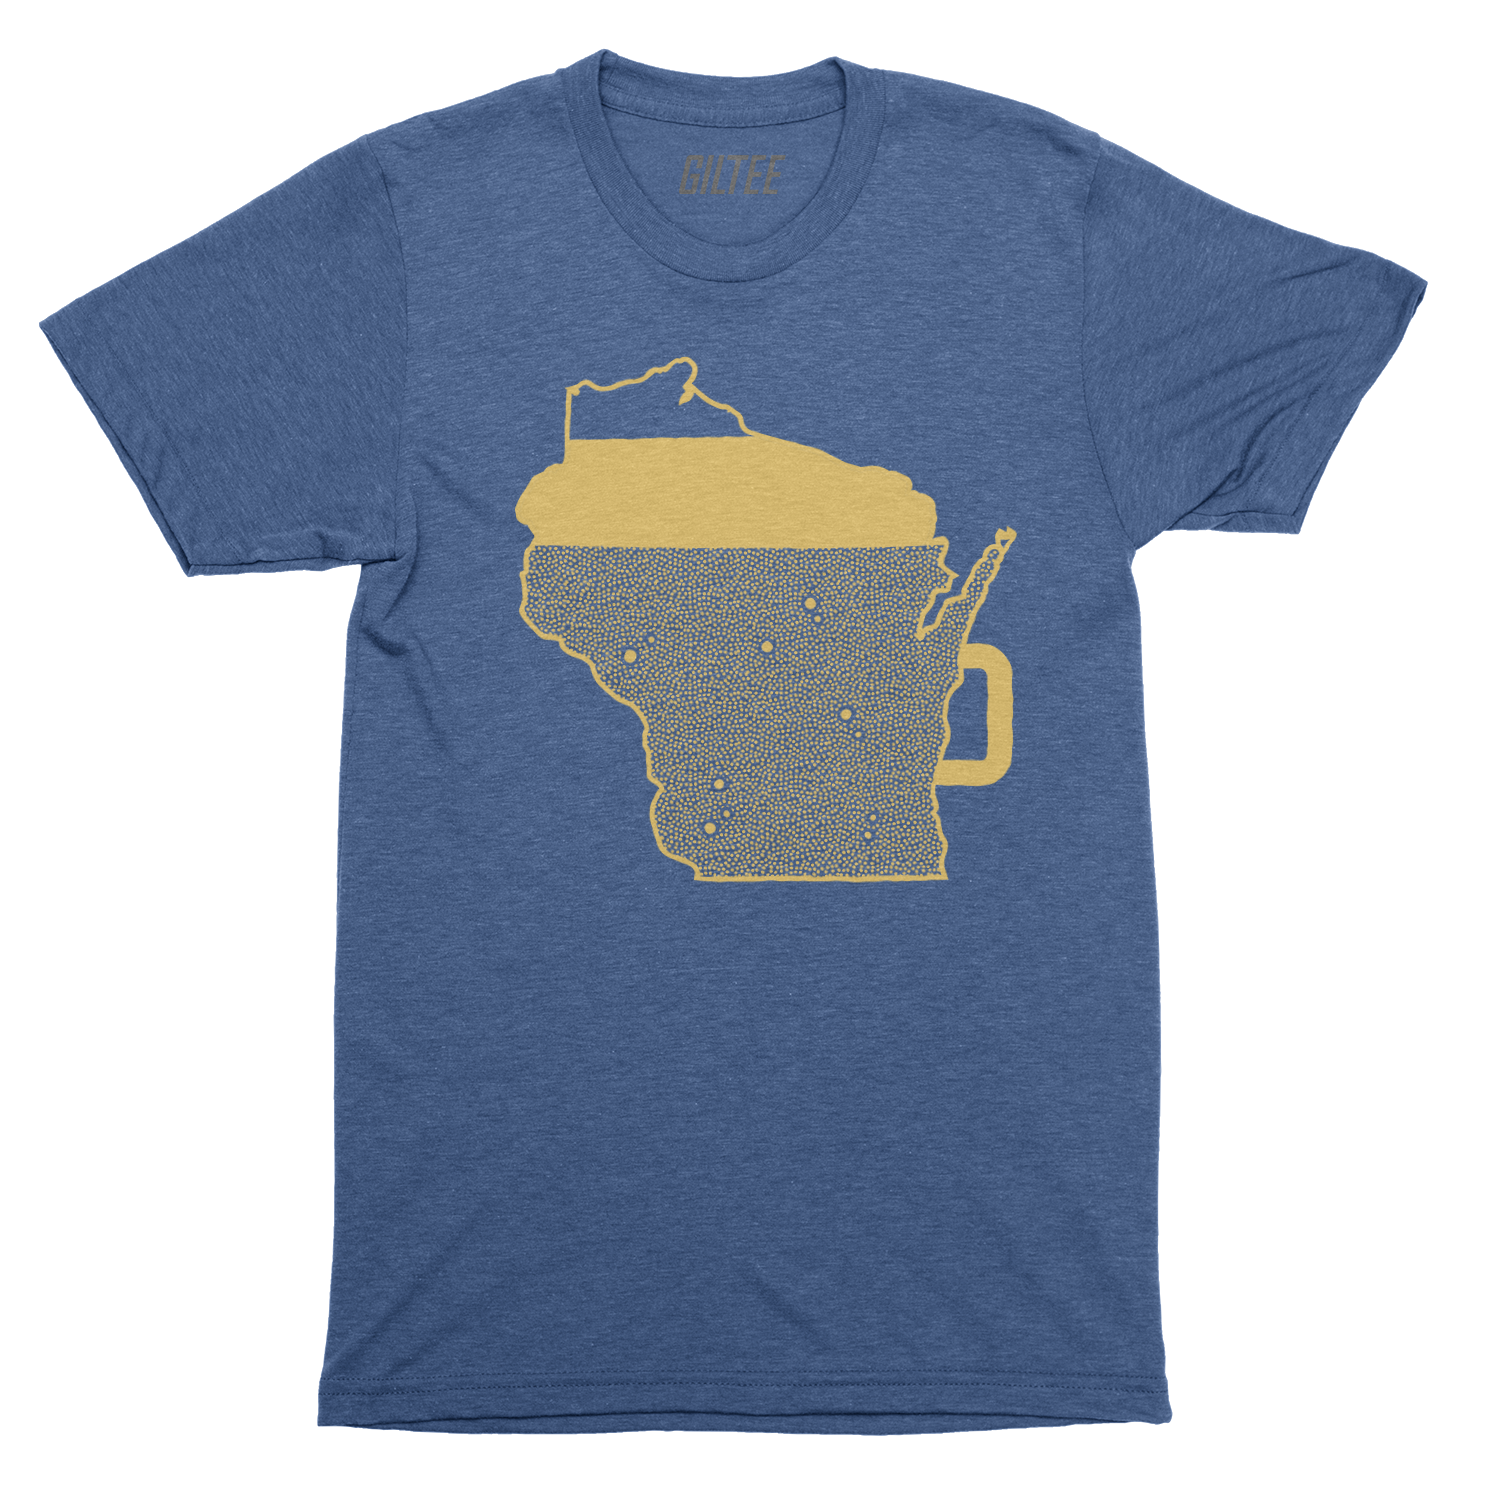 The Beer Mug Brew Crew Unisex Tee